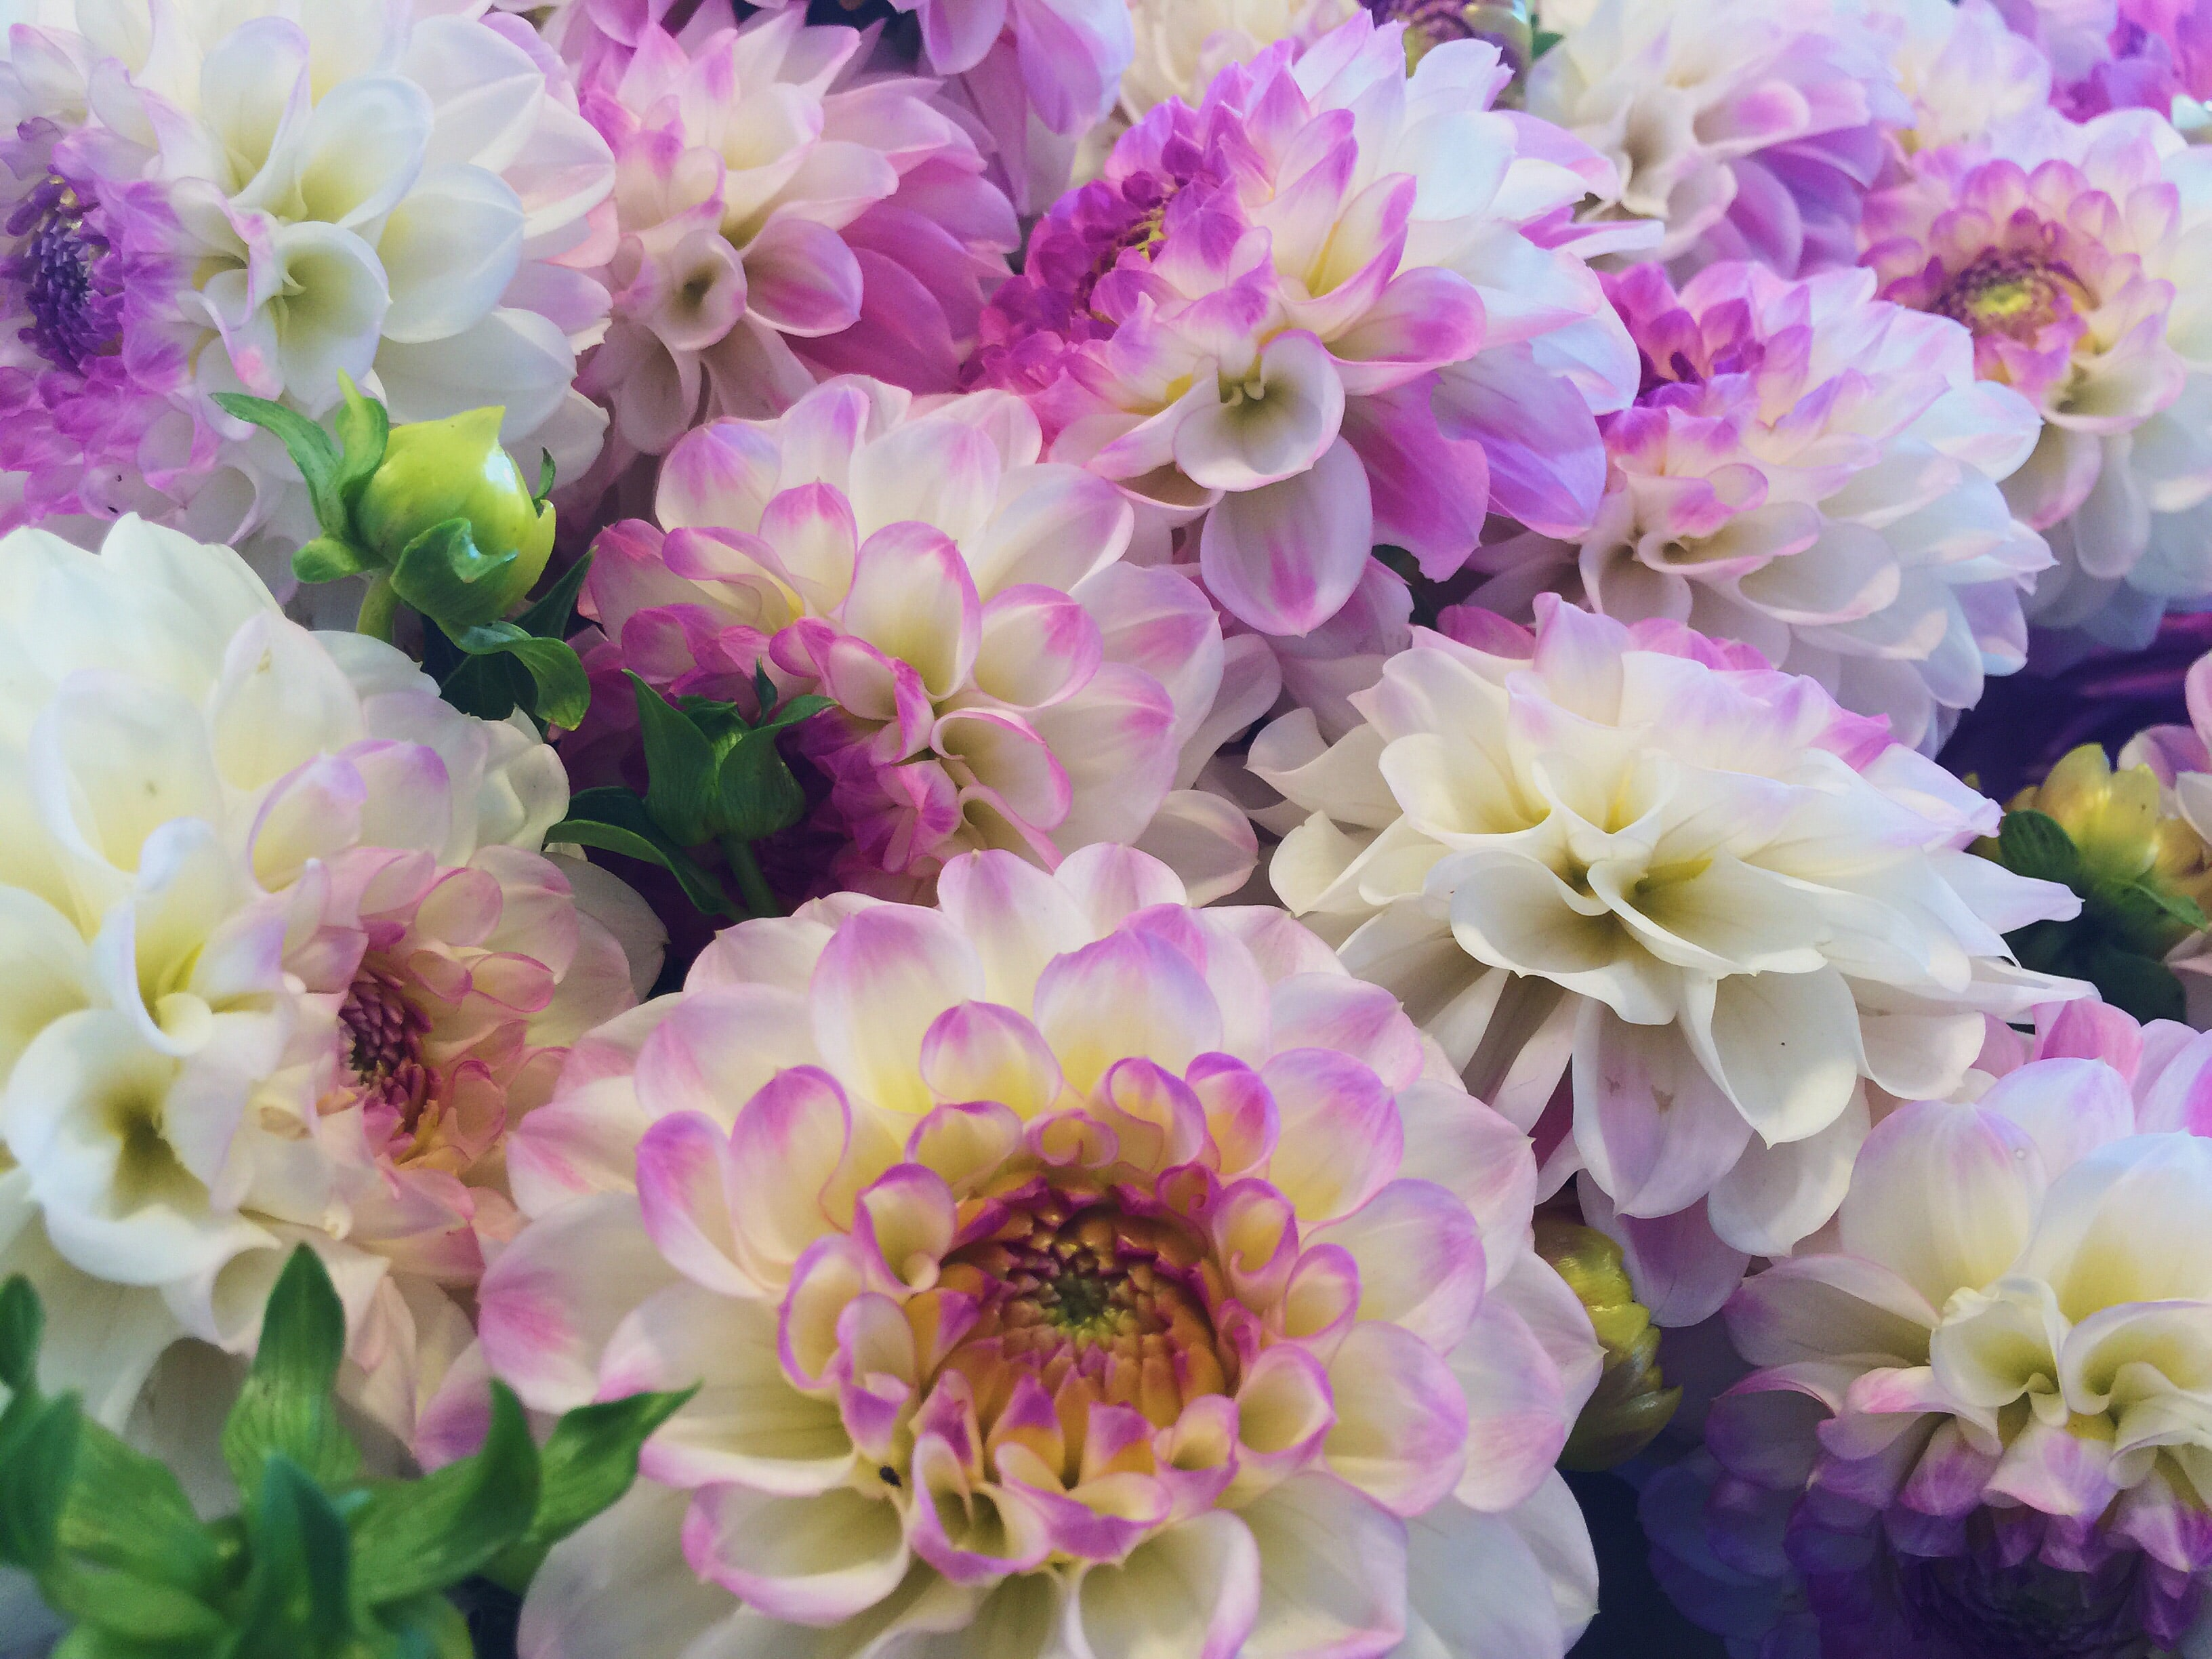 Beautiful white, purple and yellow toned flowers.